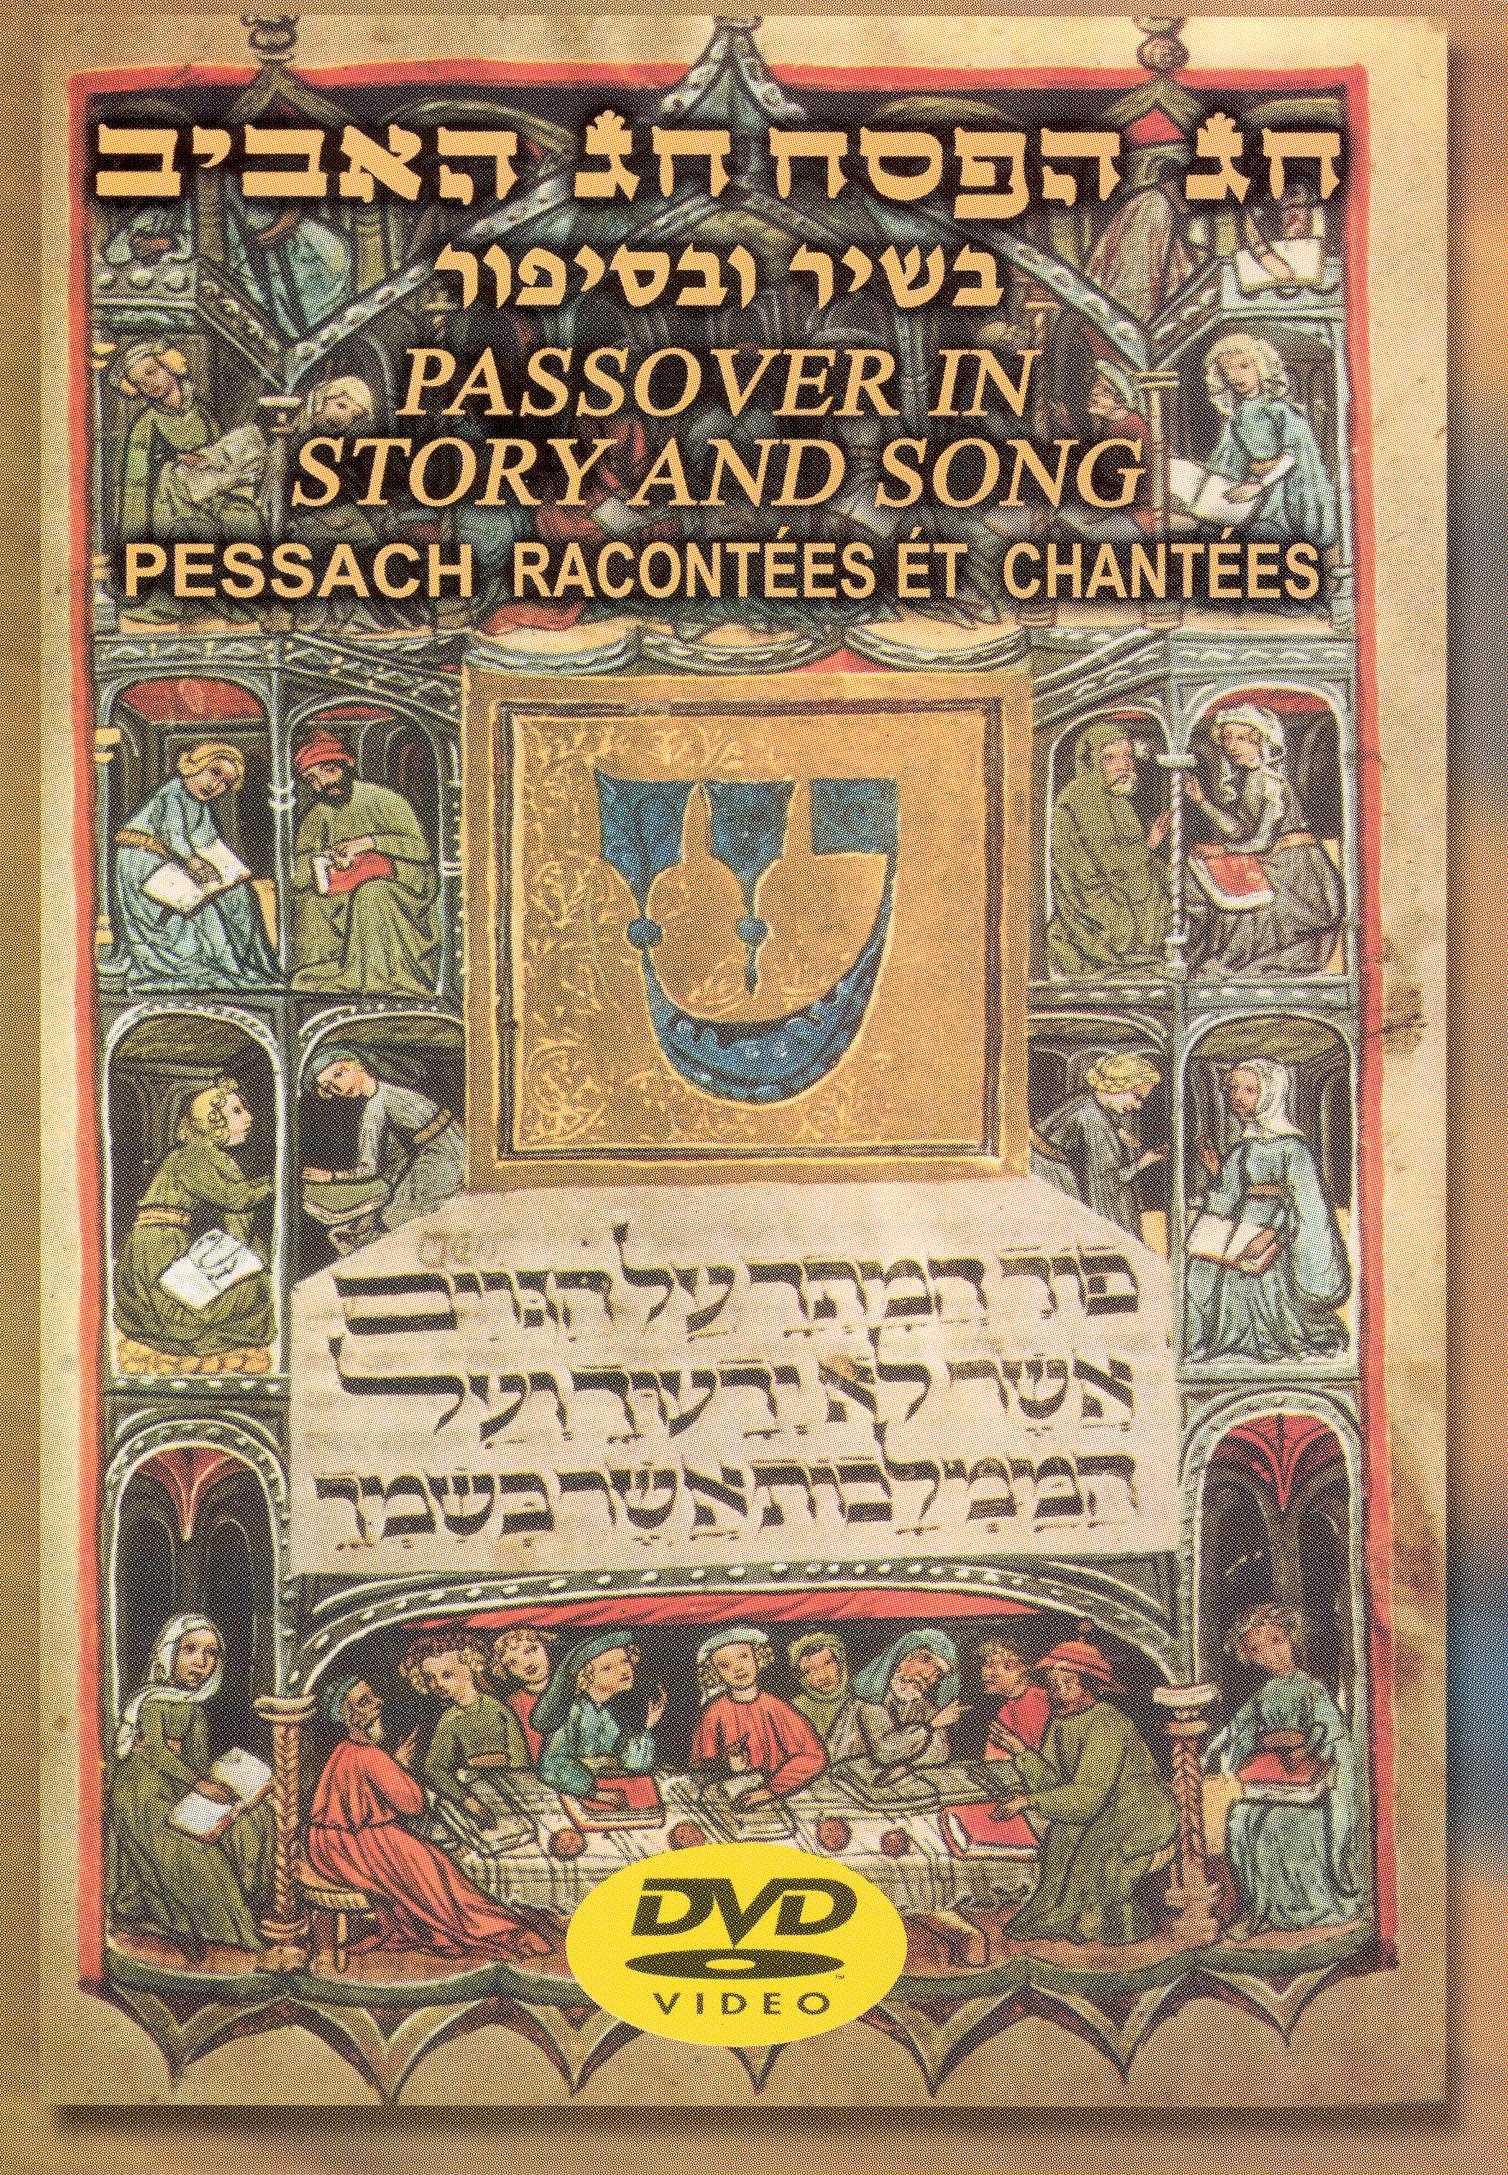 Passover In Story and Song